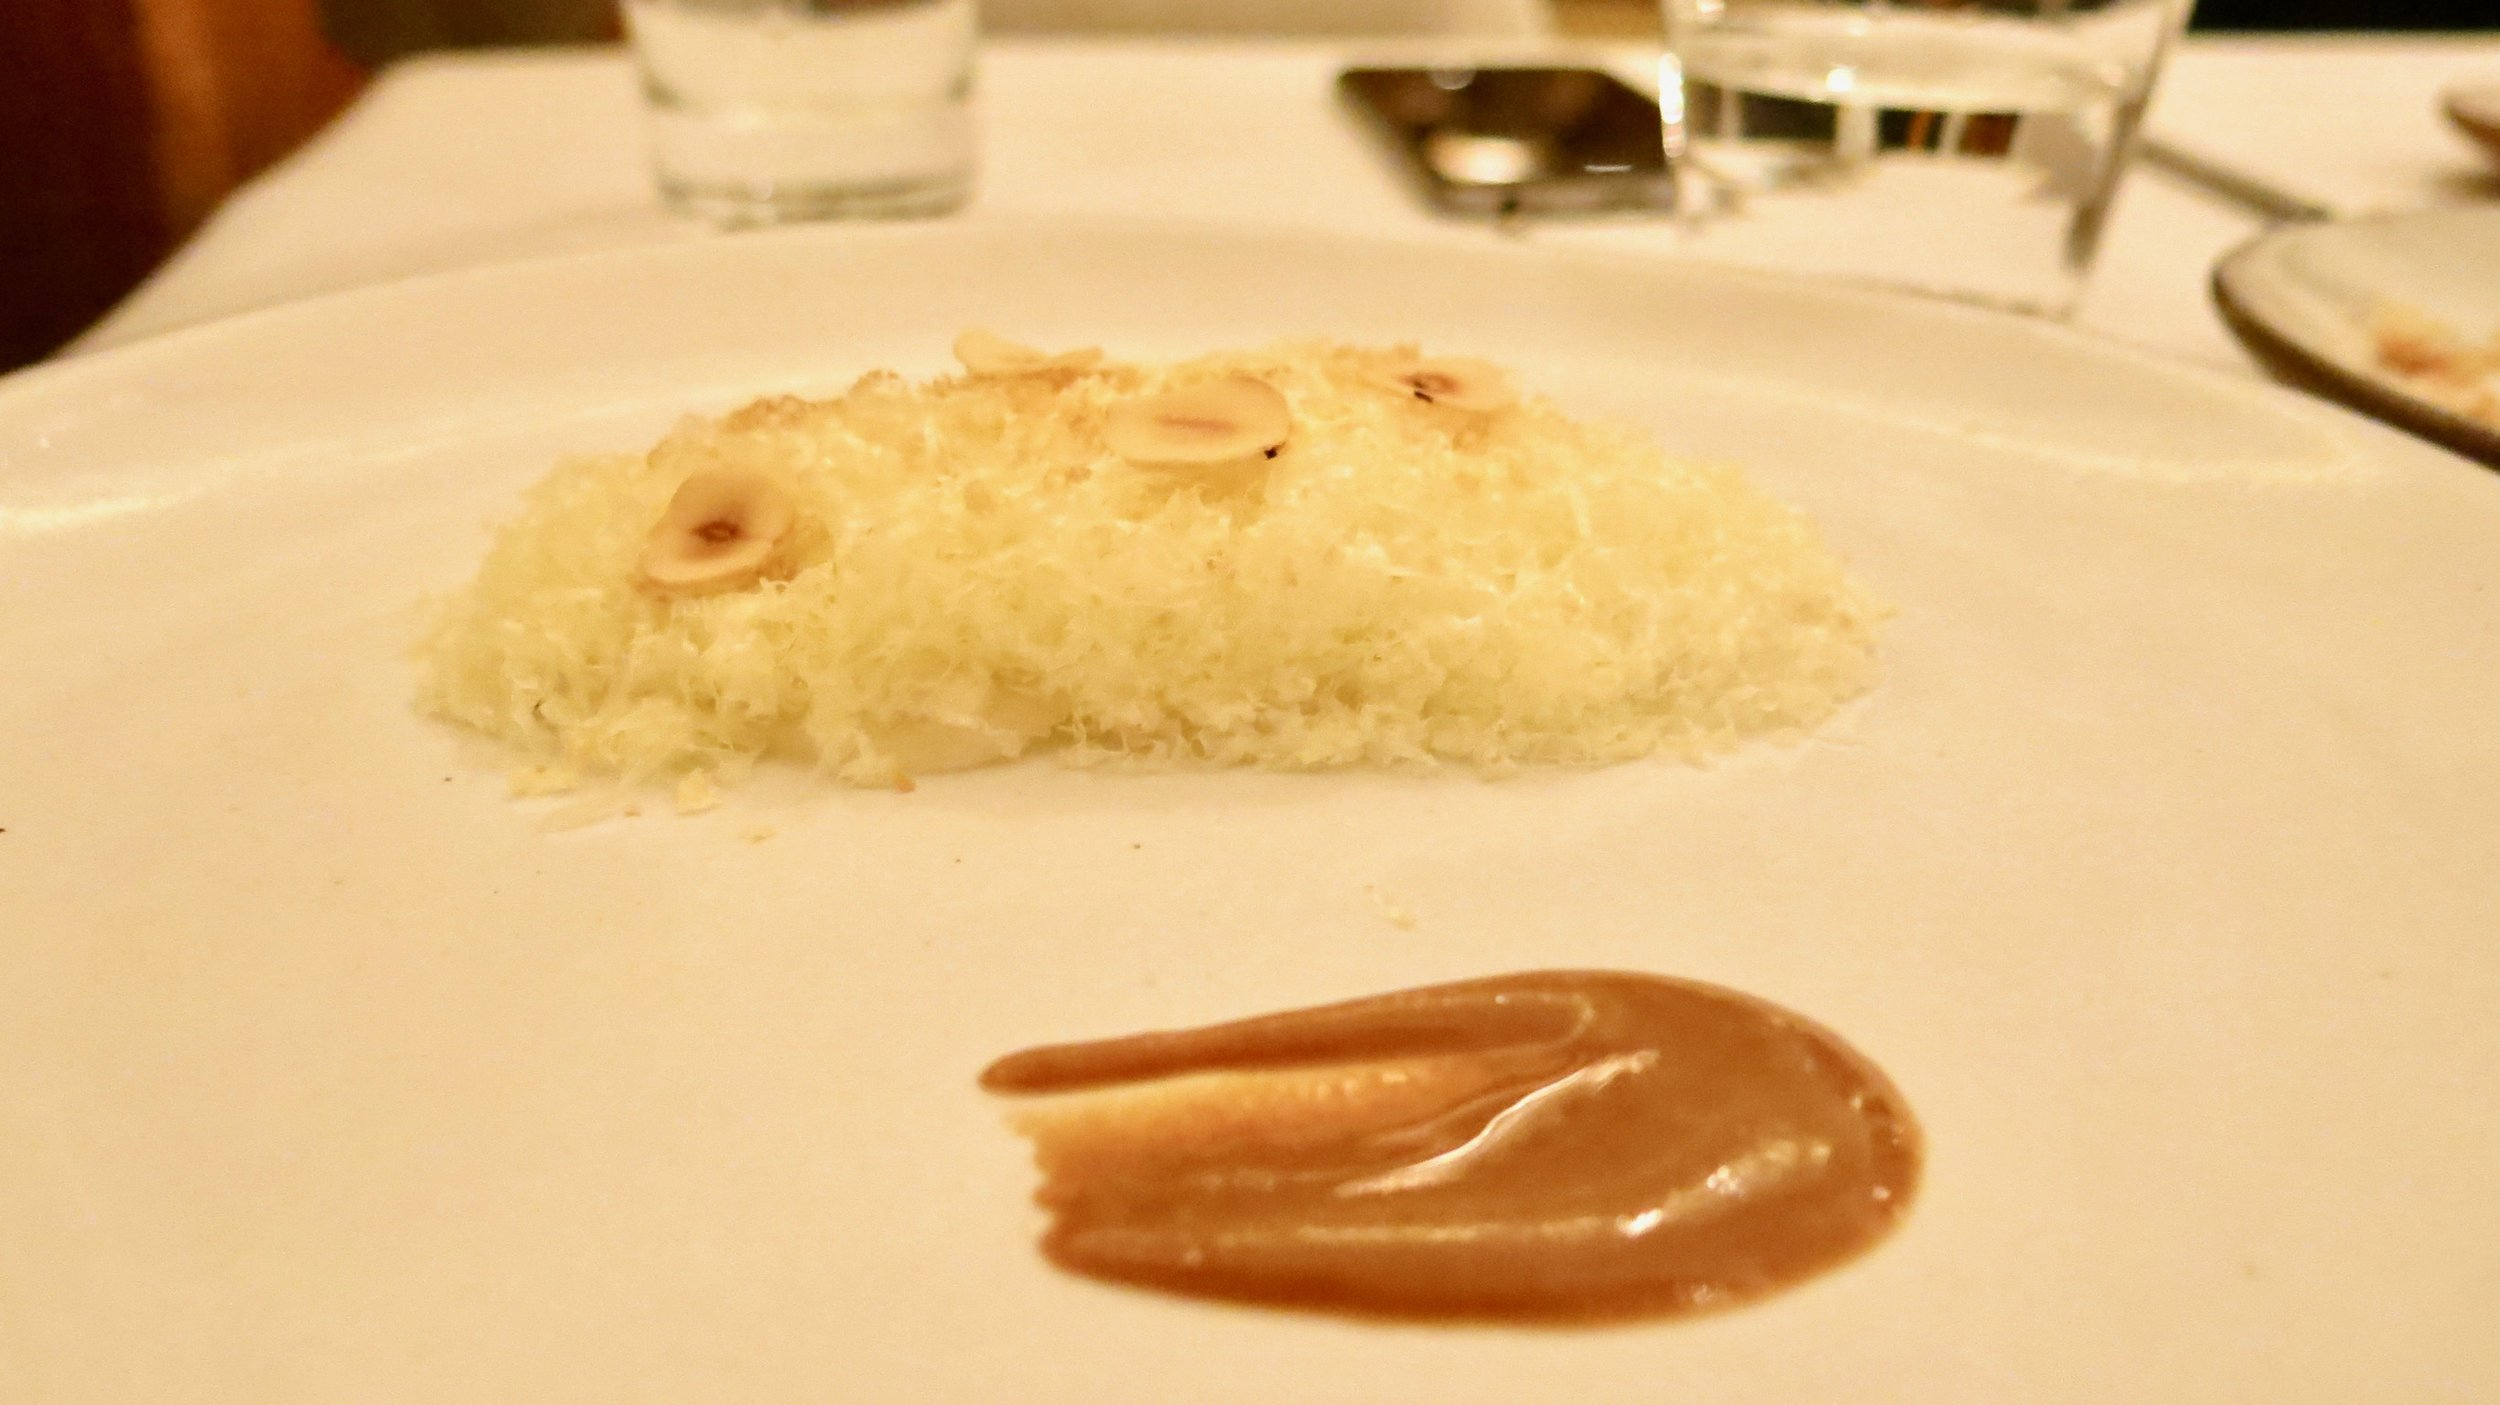 7th Course - Kohlrabi: Pear Salad with Cheddar and Hazelnut